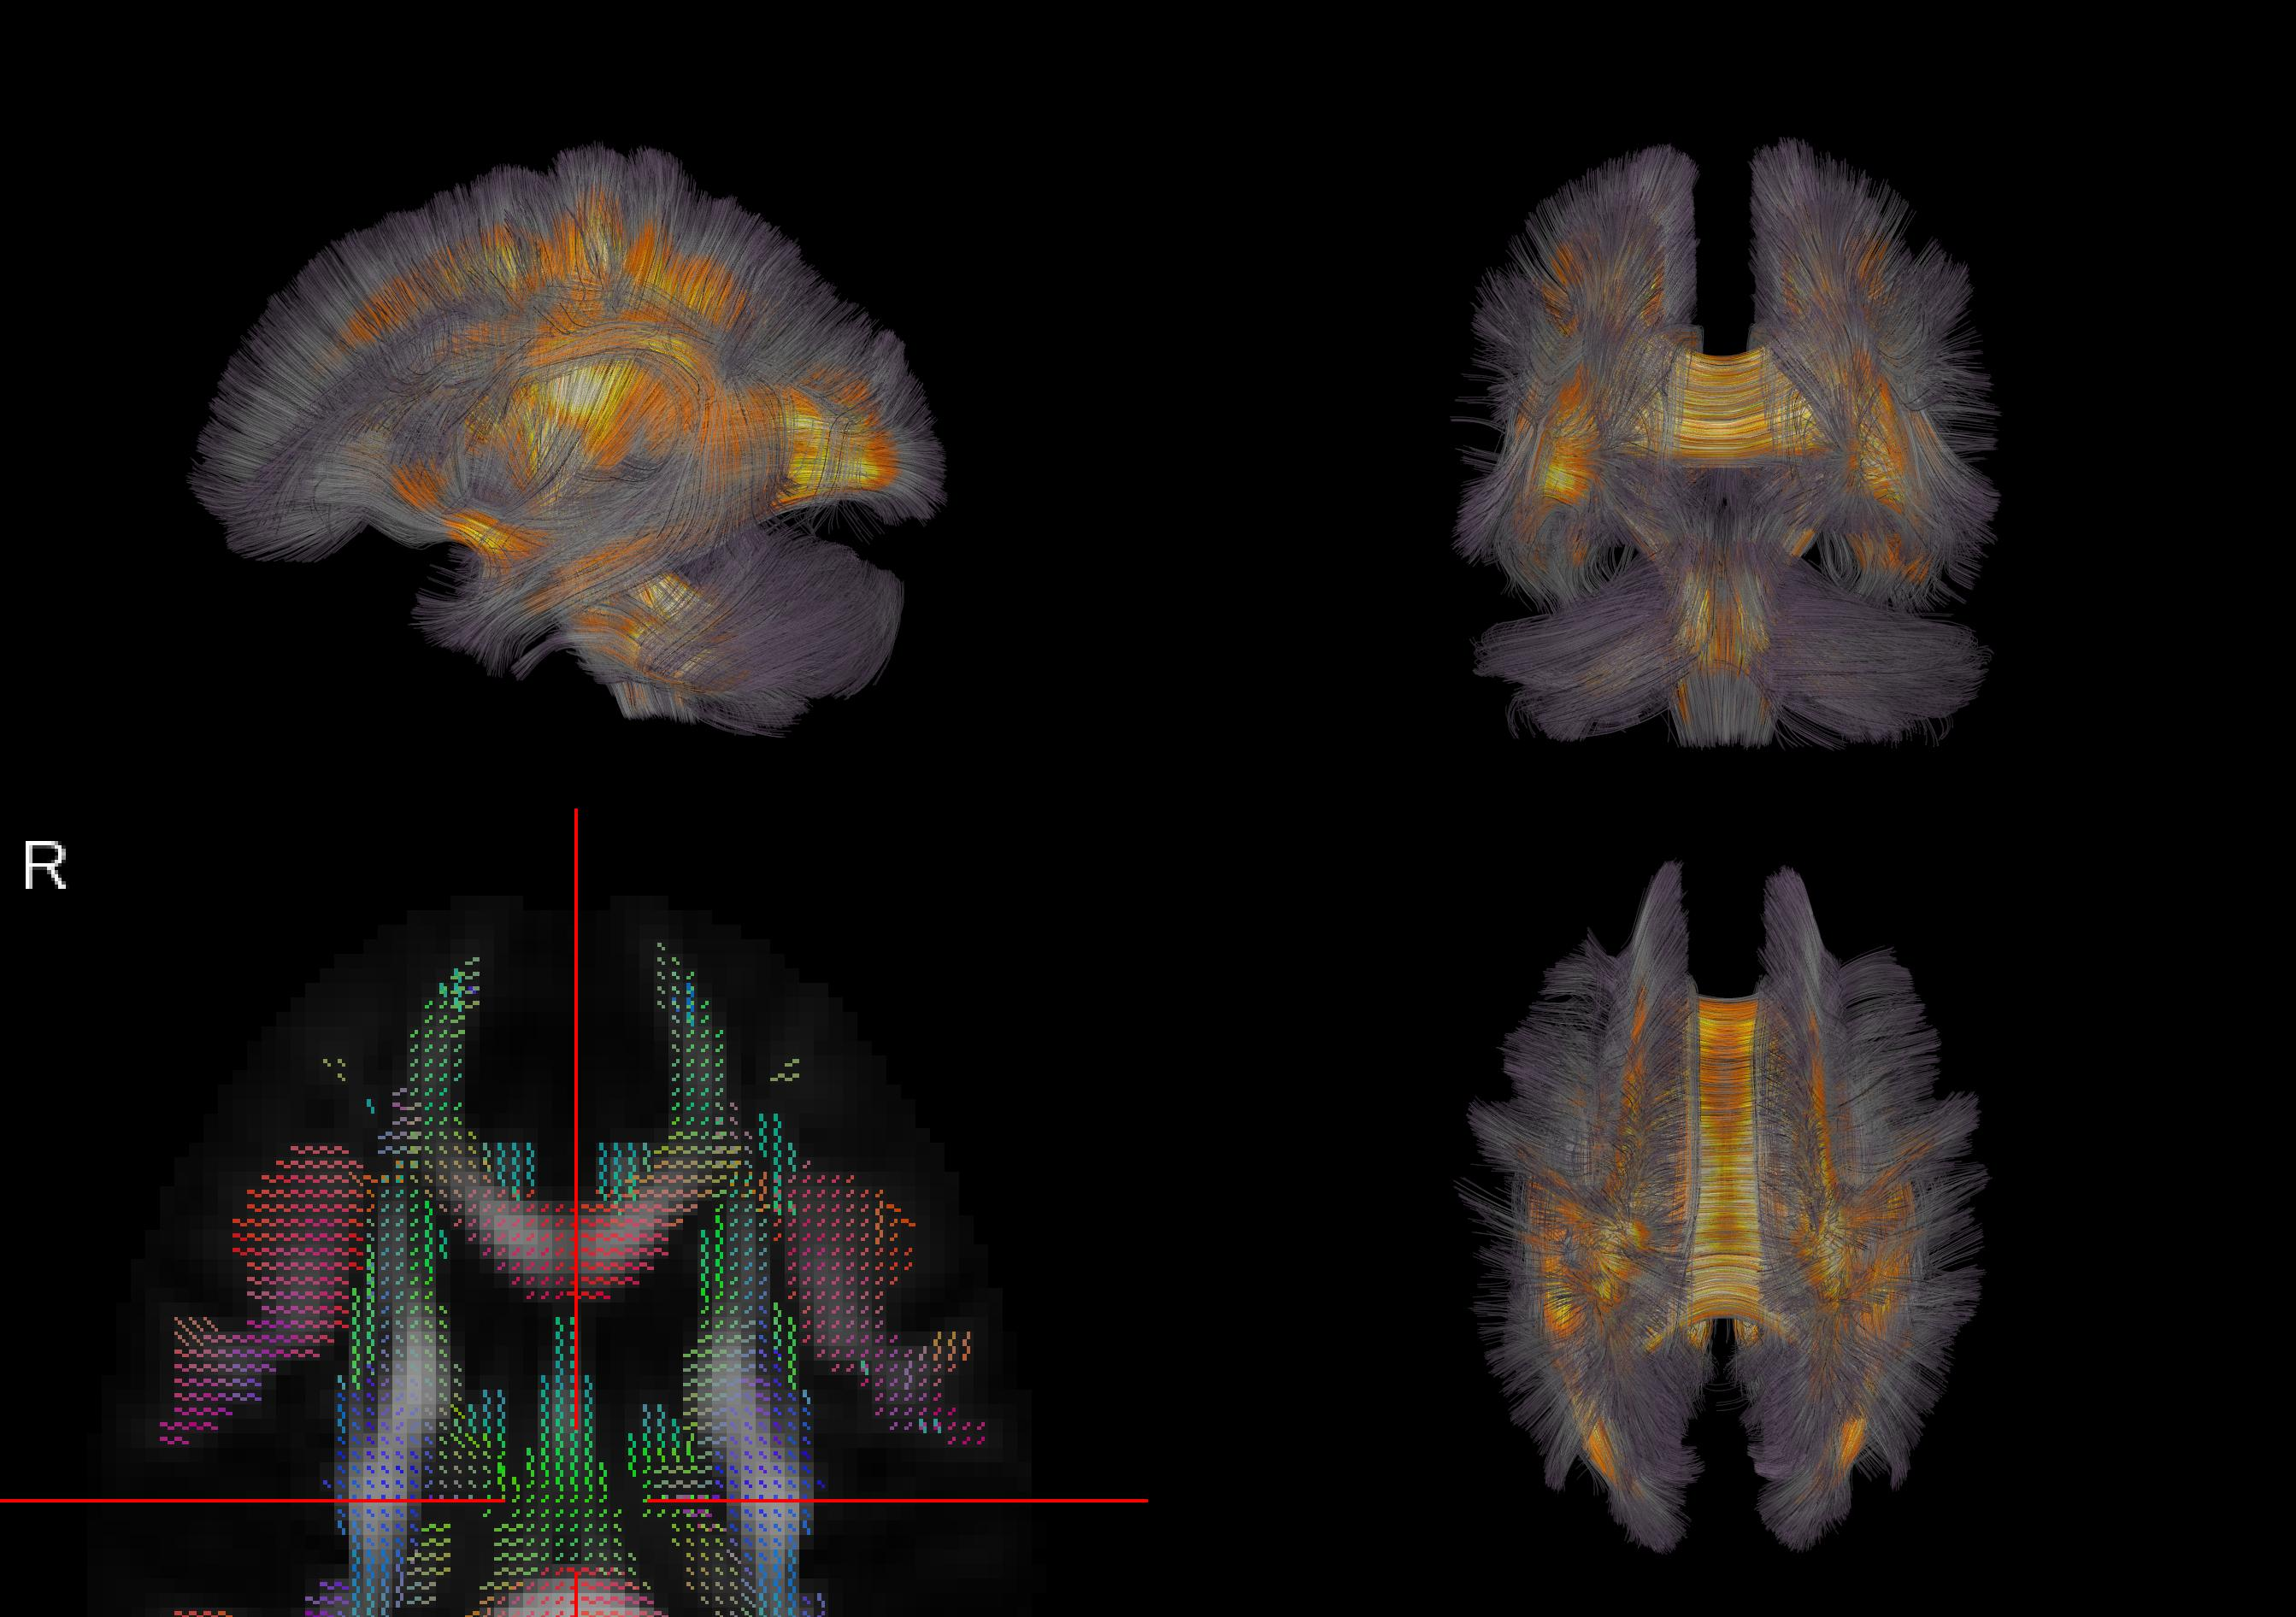 penn university of california and army research lab show how wiring diagrams of the brain which constrain information transmission and communication between different